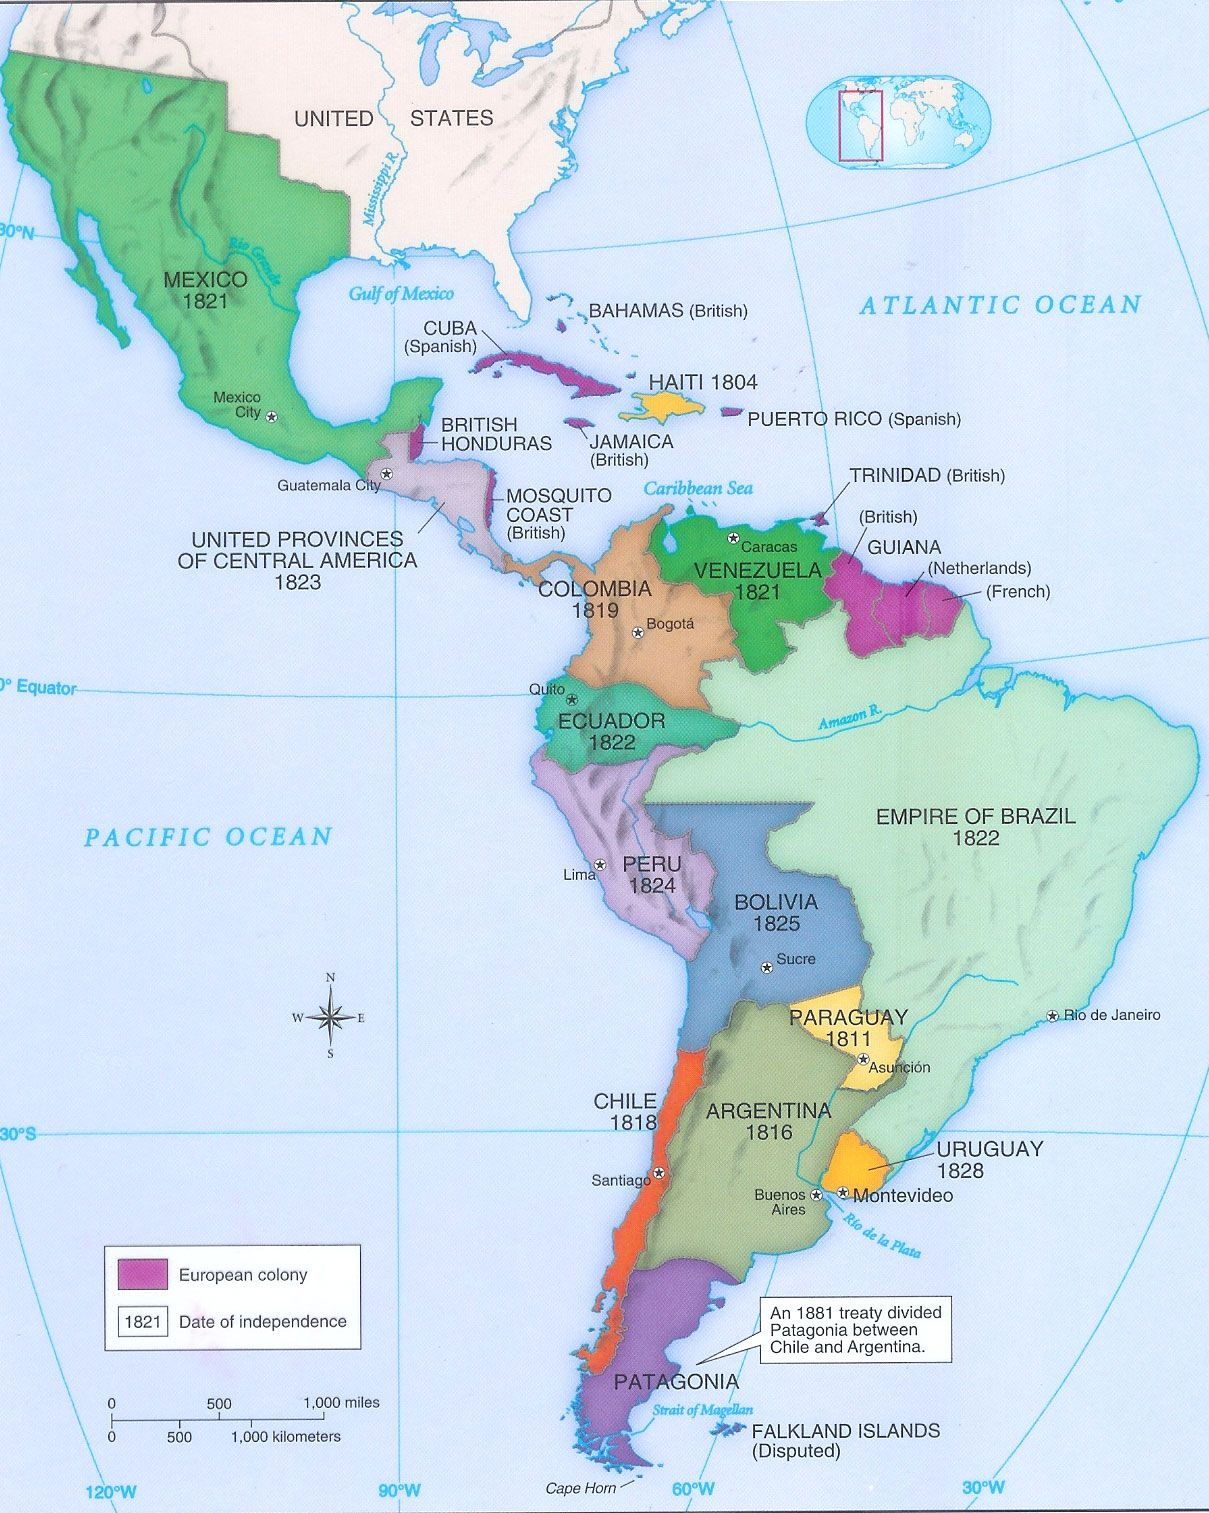 a history of latin america The cambridge history of latin america is the first authoritative large-scale history of the whole of latin america - mexico and central america.